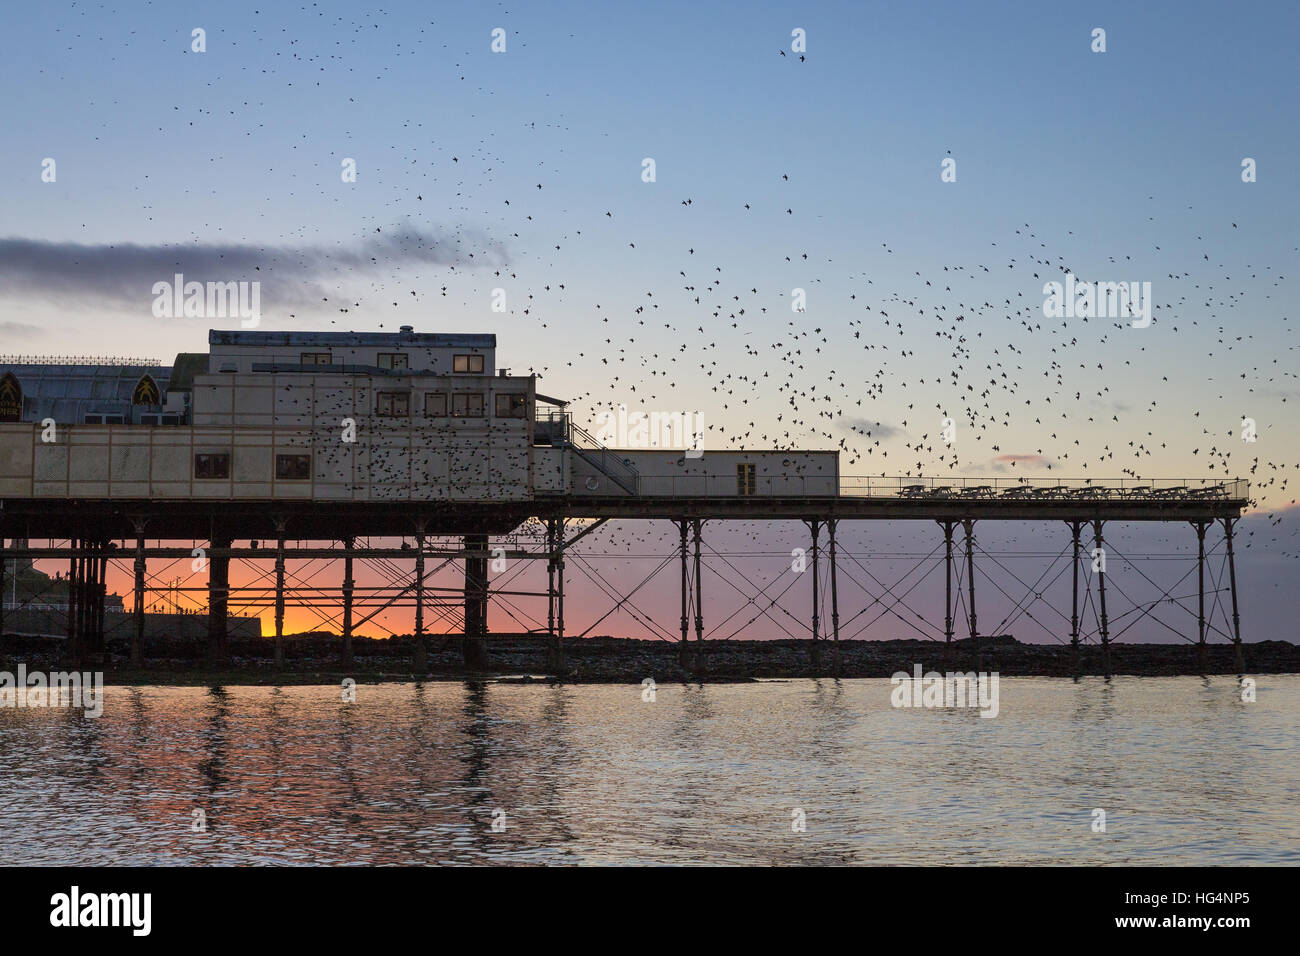 Thousands of Starlings (Sturnus vulgaris) coming in to roost on the pier in Aberystwyth, Ceredigion, Wales, UK - Stock Image